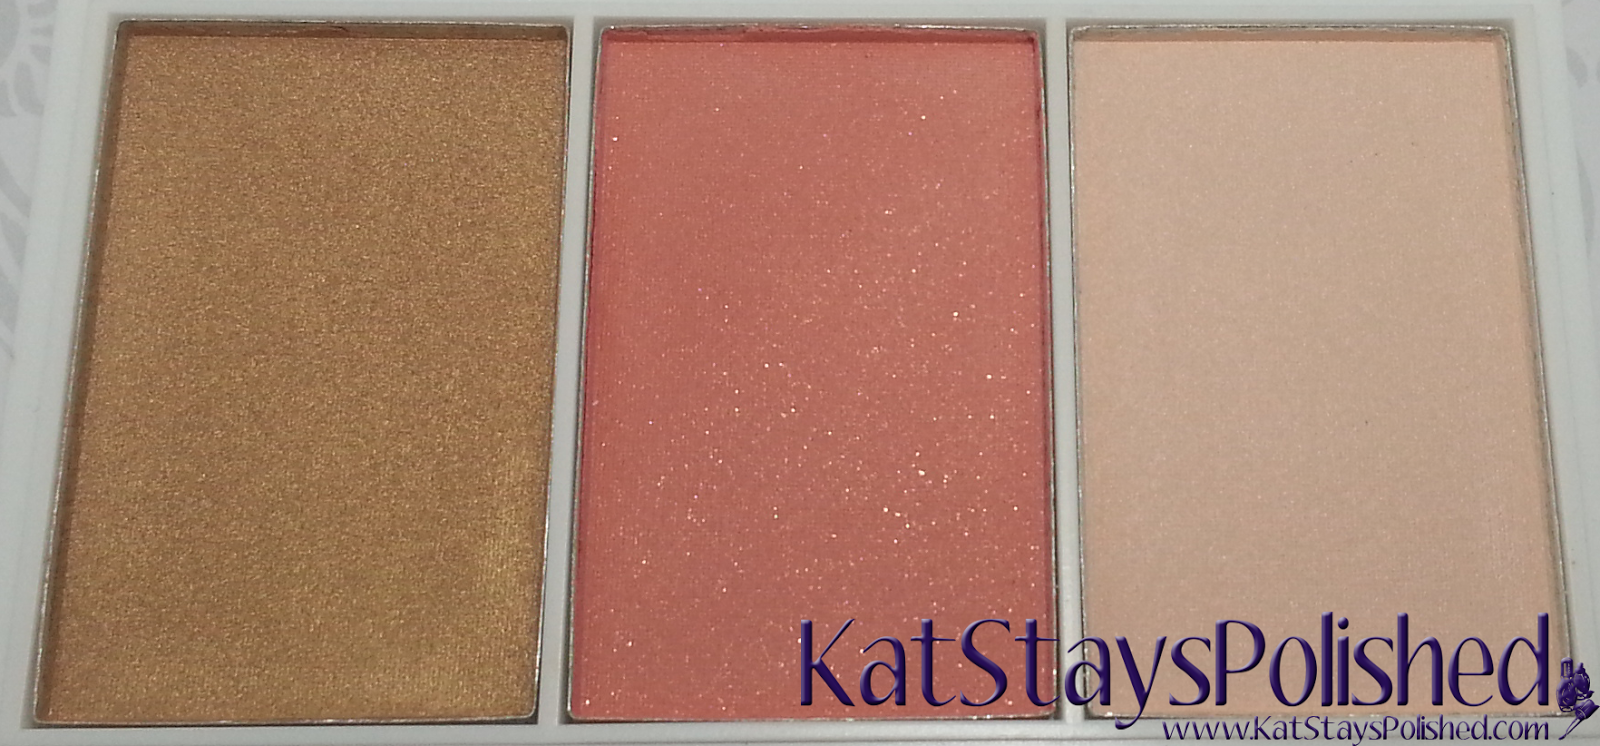 e.l.f. Disney's Frozen Elsa Snow and Ice Icicle Face Palette | Kat Stays Polished